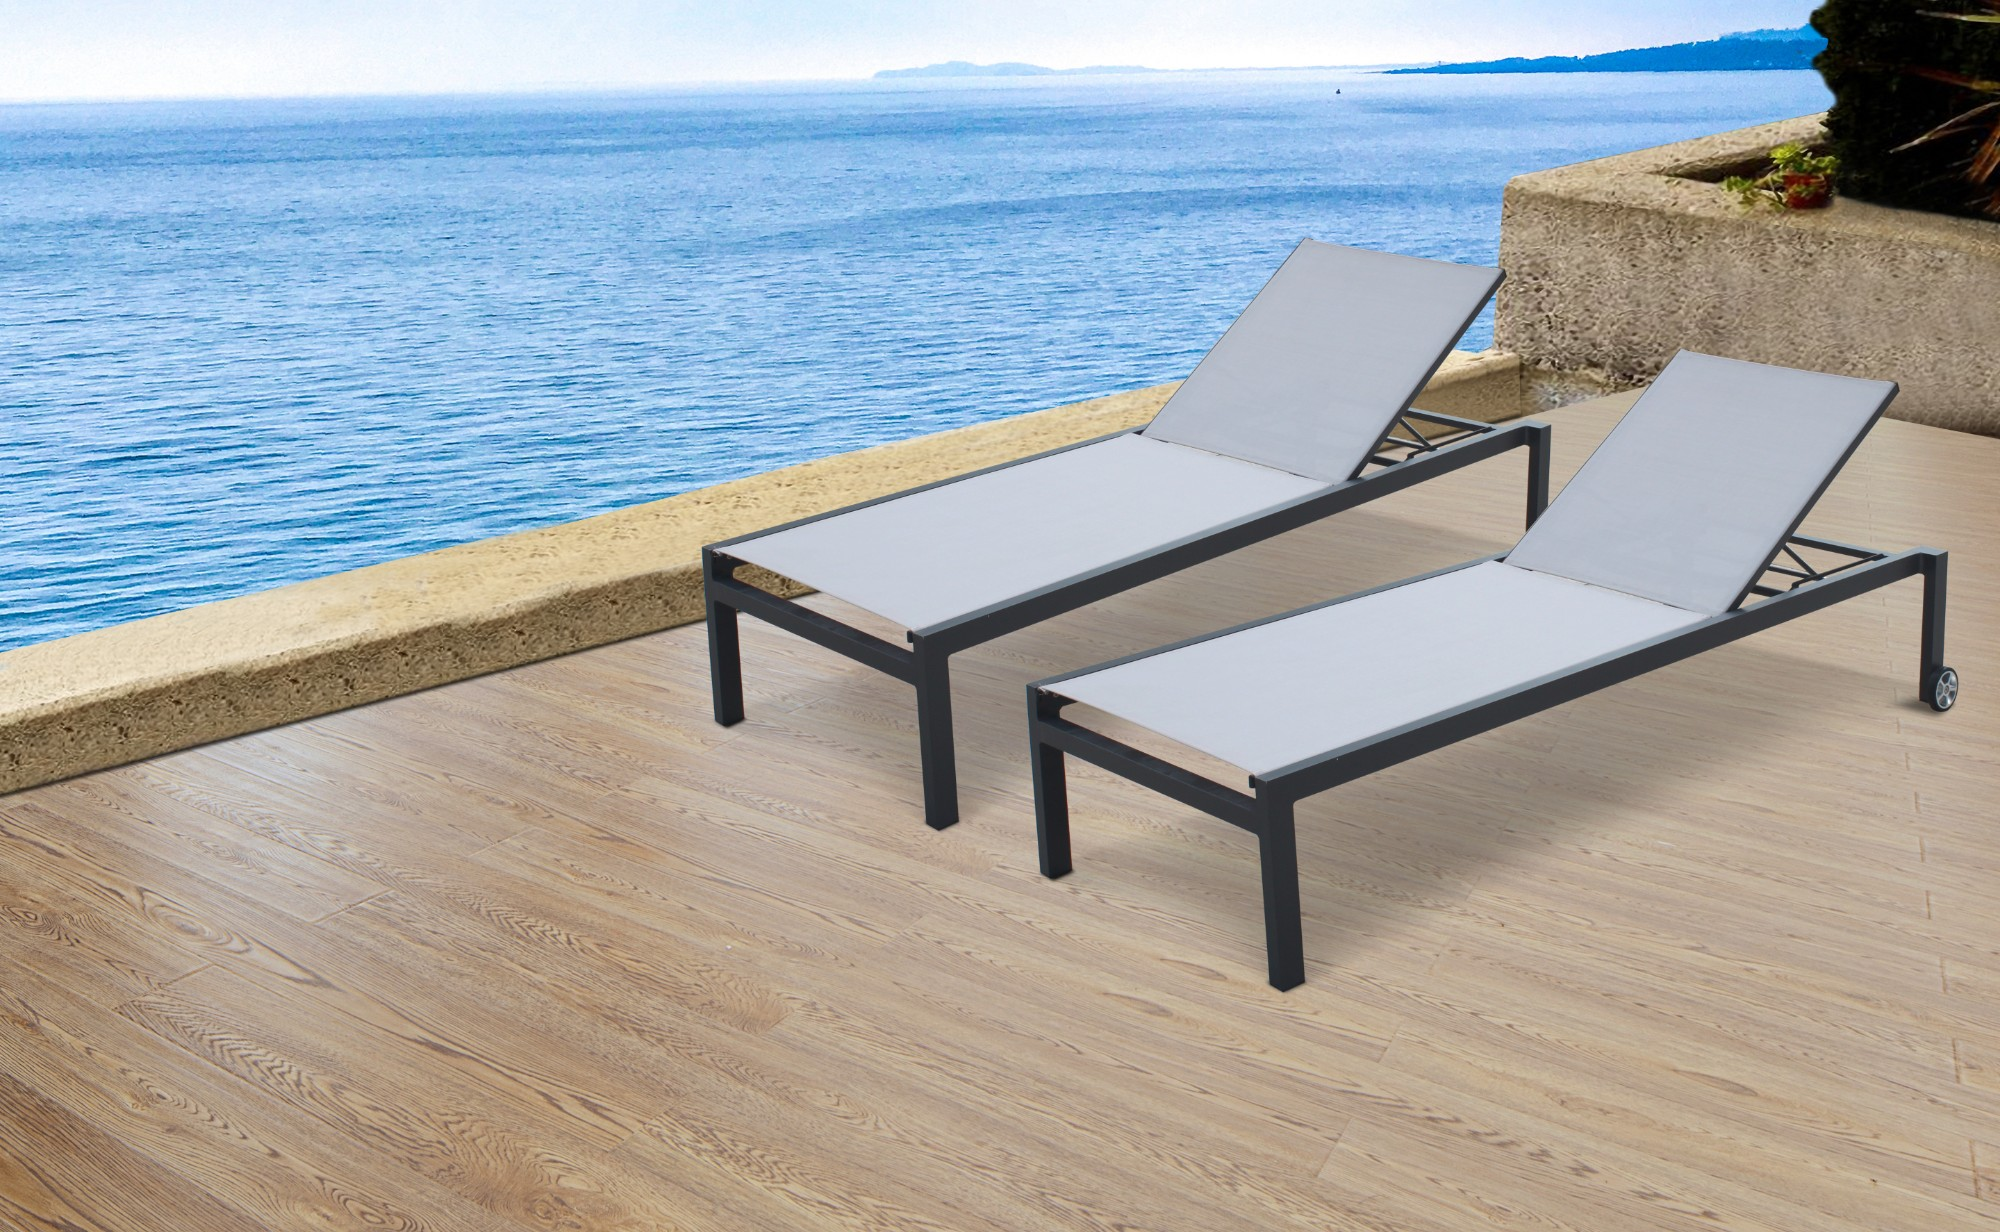 pool lounge chair sun beds outdoor furniture Manufacturers, pool lounge chair sun beds outdoor furniture Factory, Supply pool lounge chair sun beds outdoor furniture